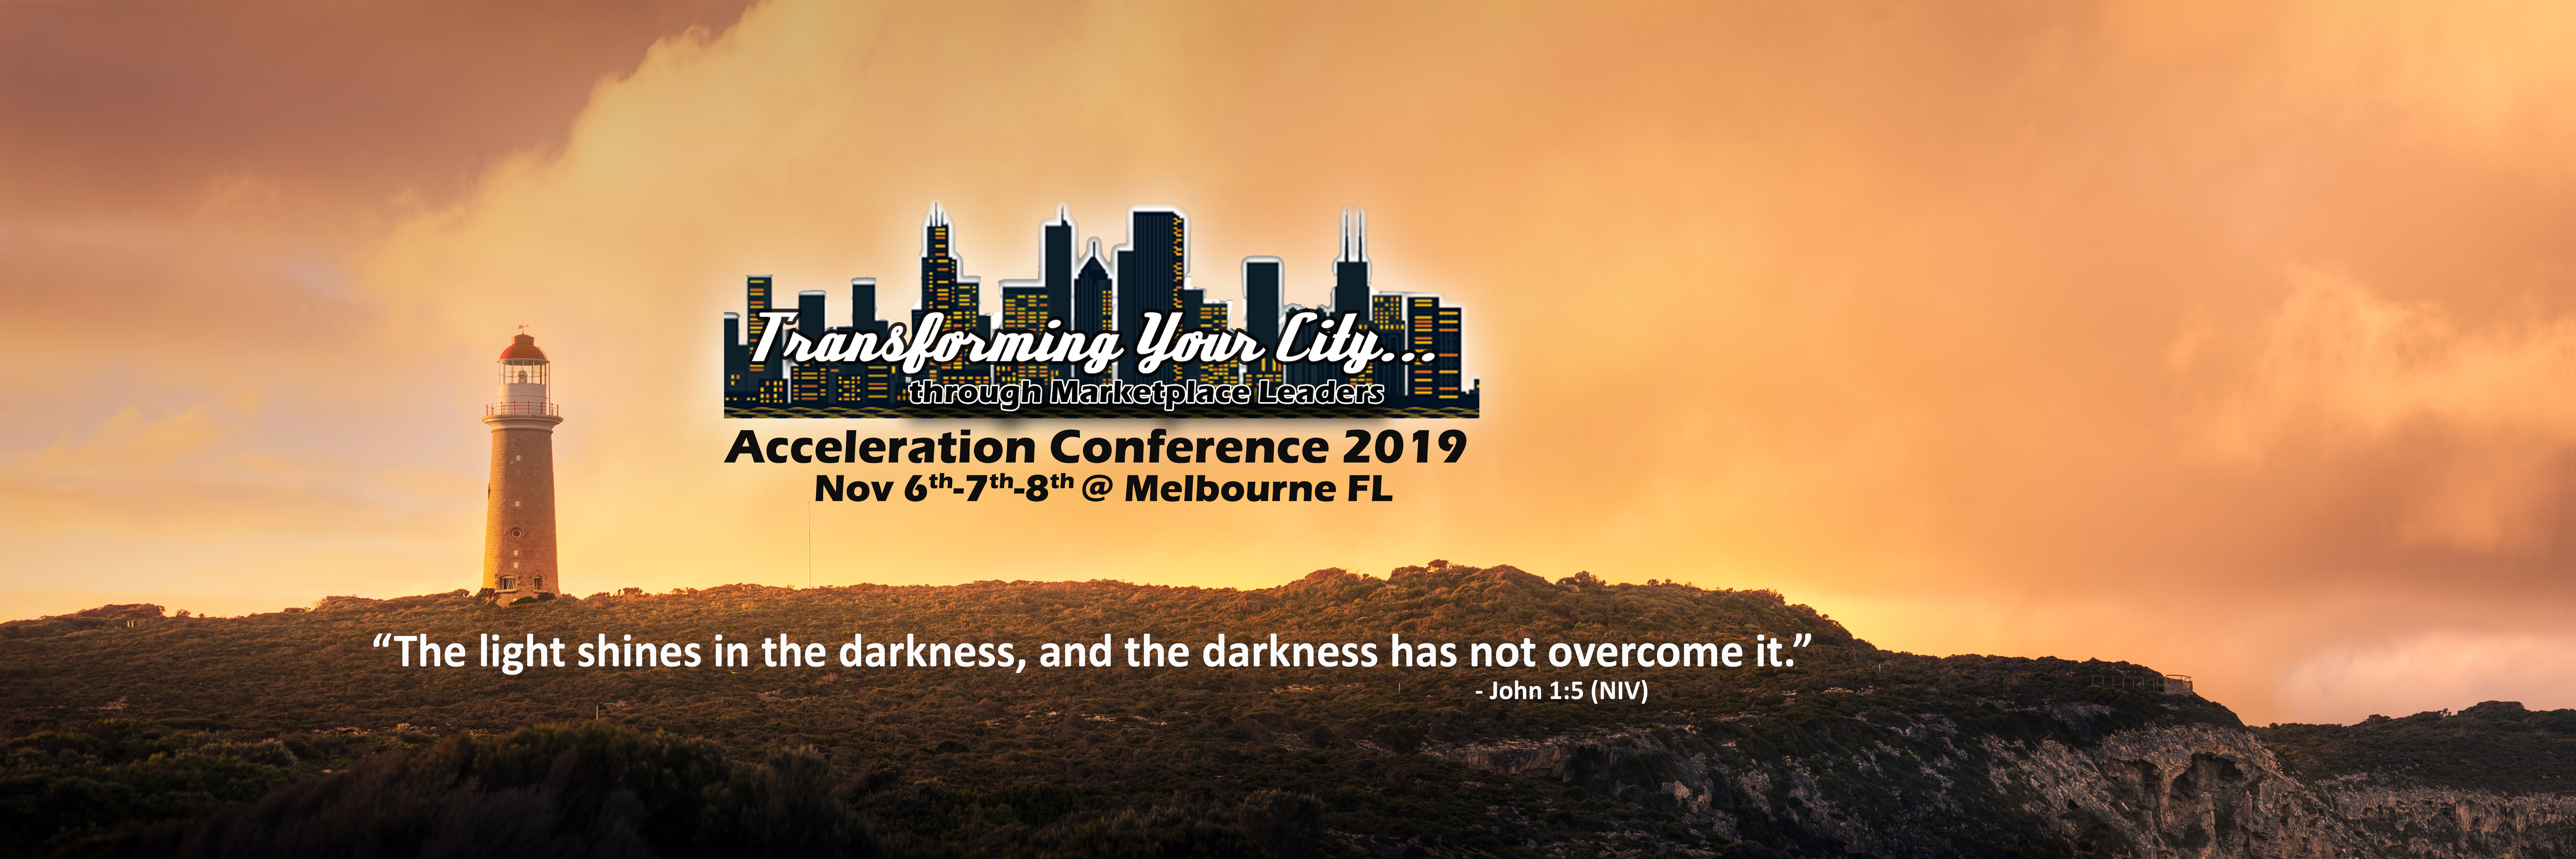 Transforming Your City Acceleration 2019